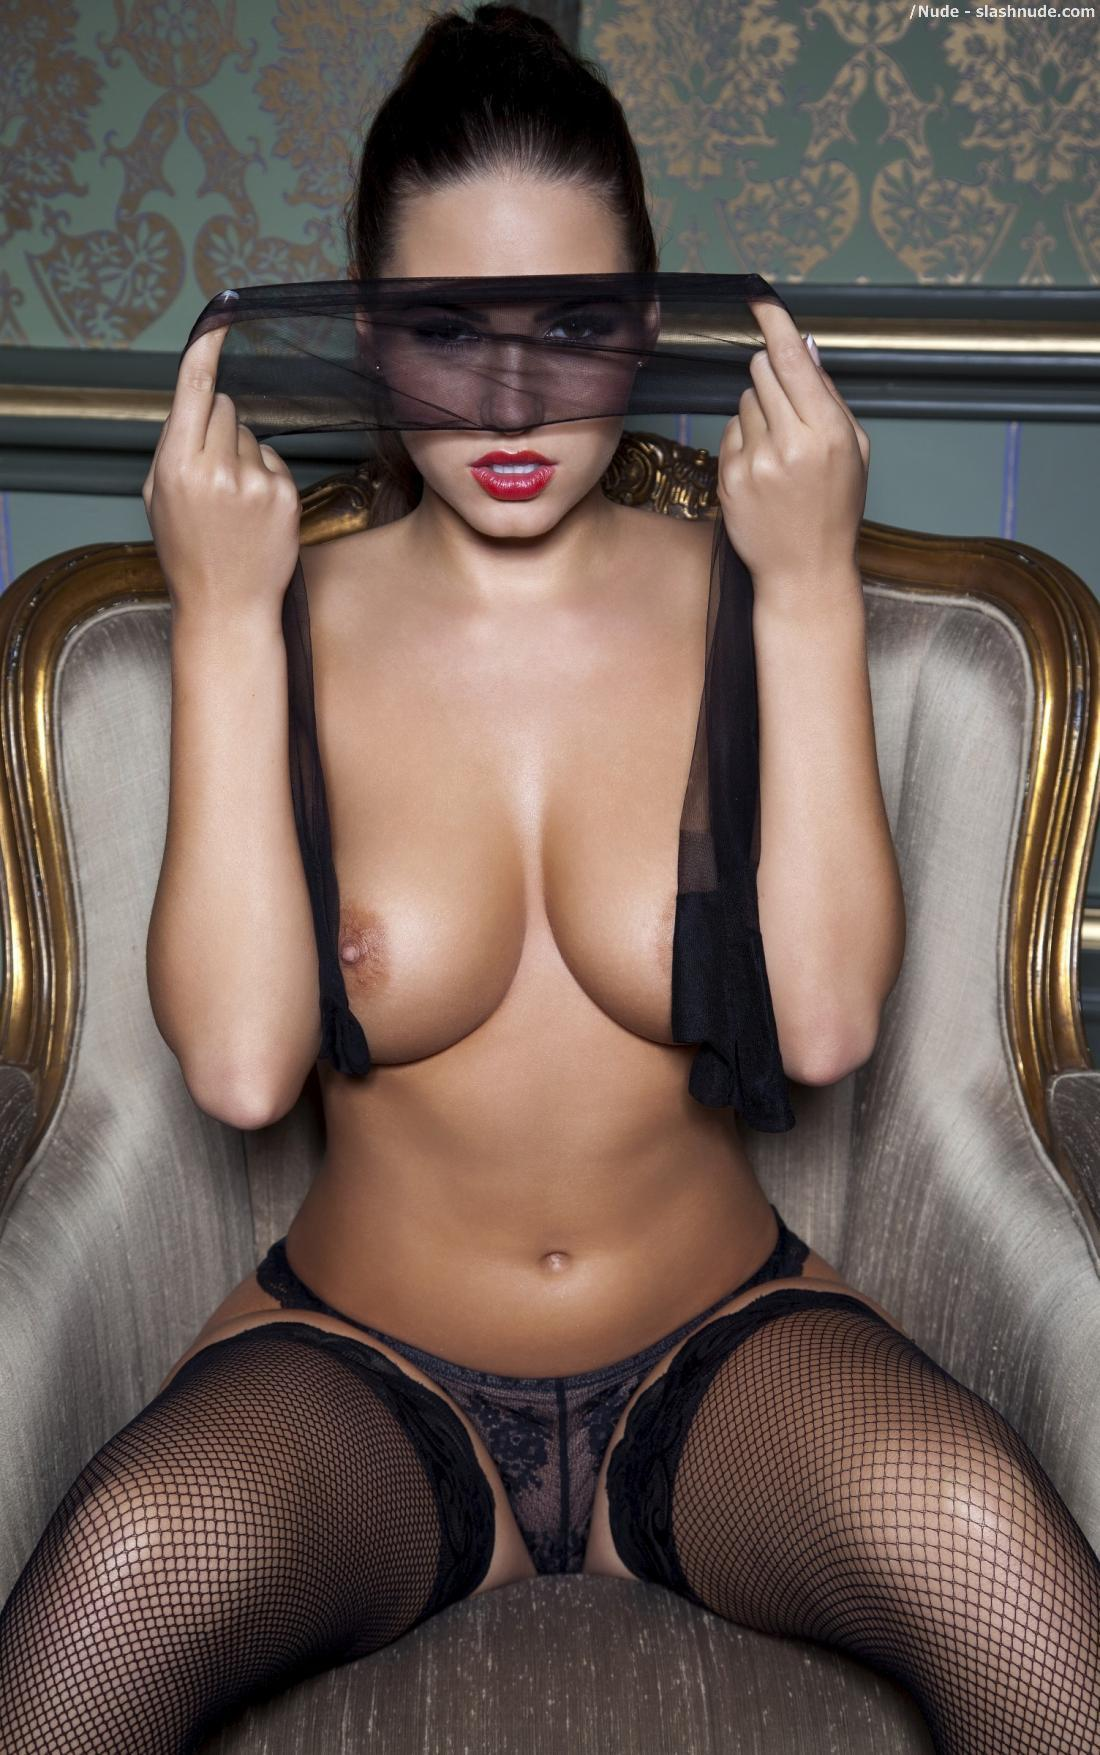 Sabine Jemeljanova Topless To Get Plastered On Our Wall 9